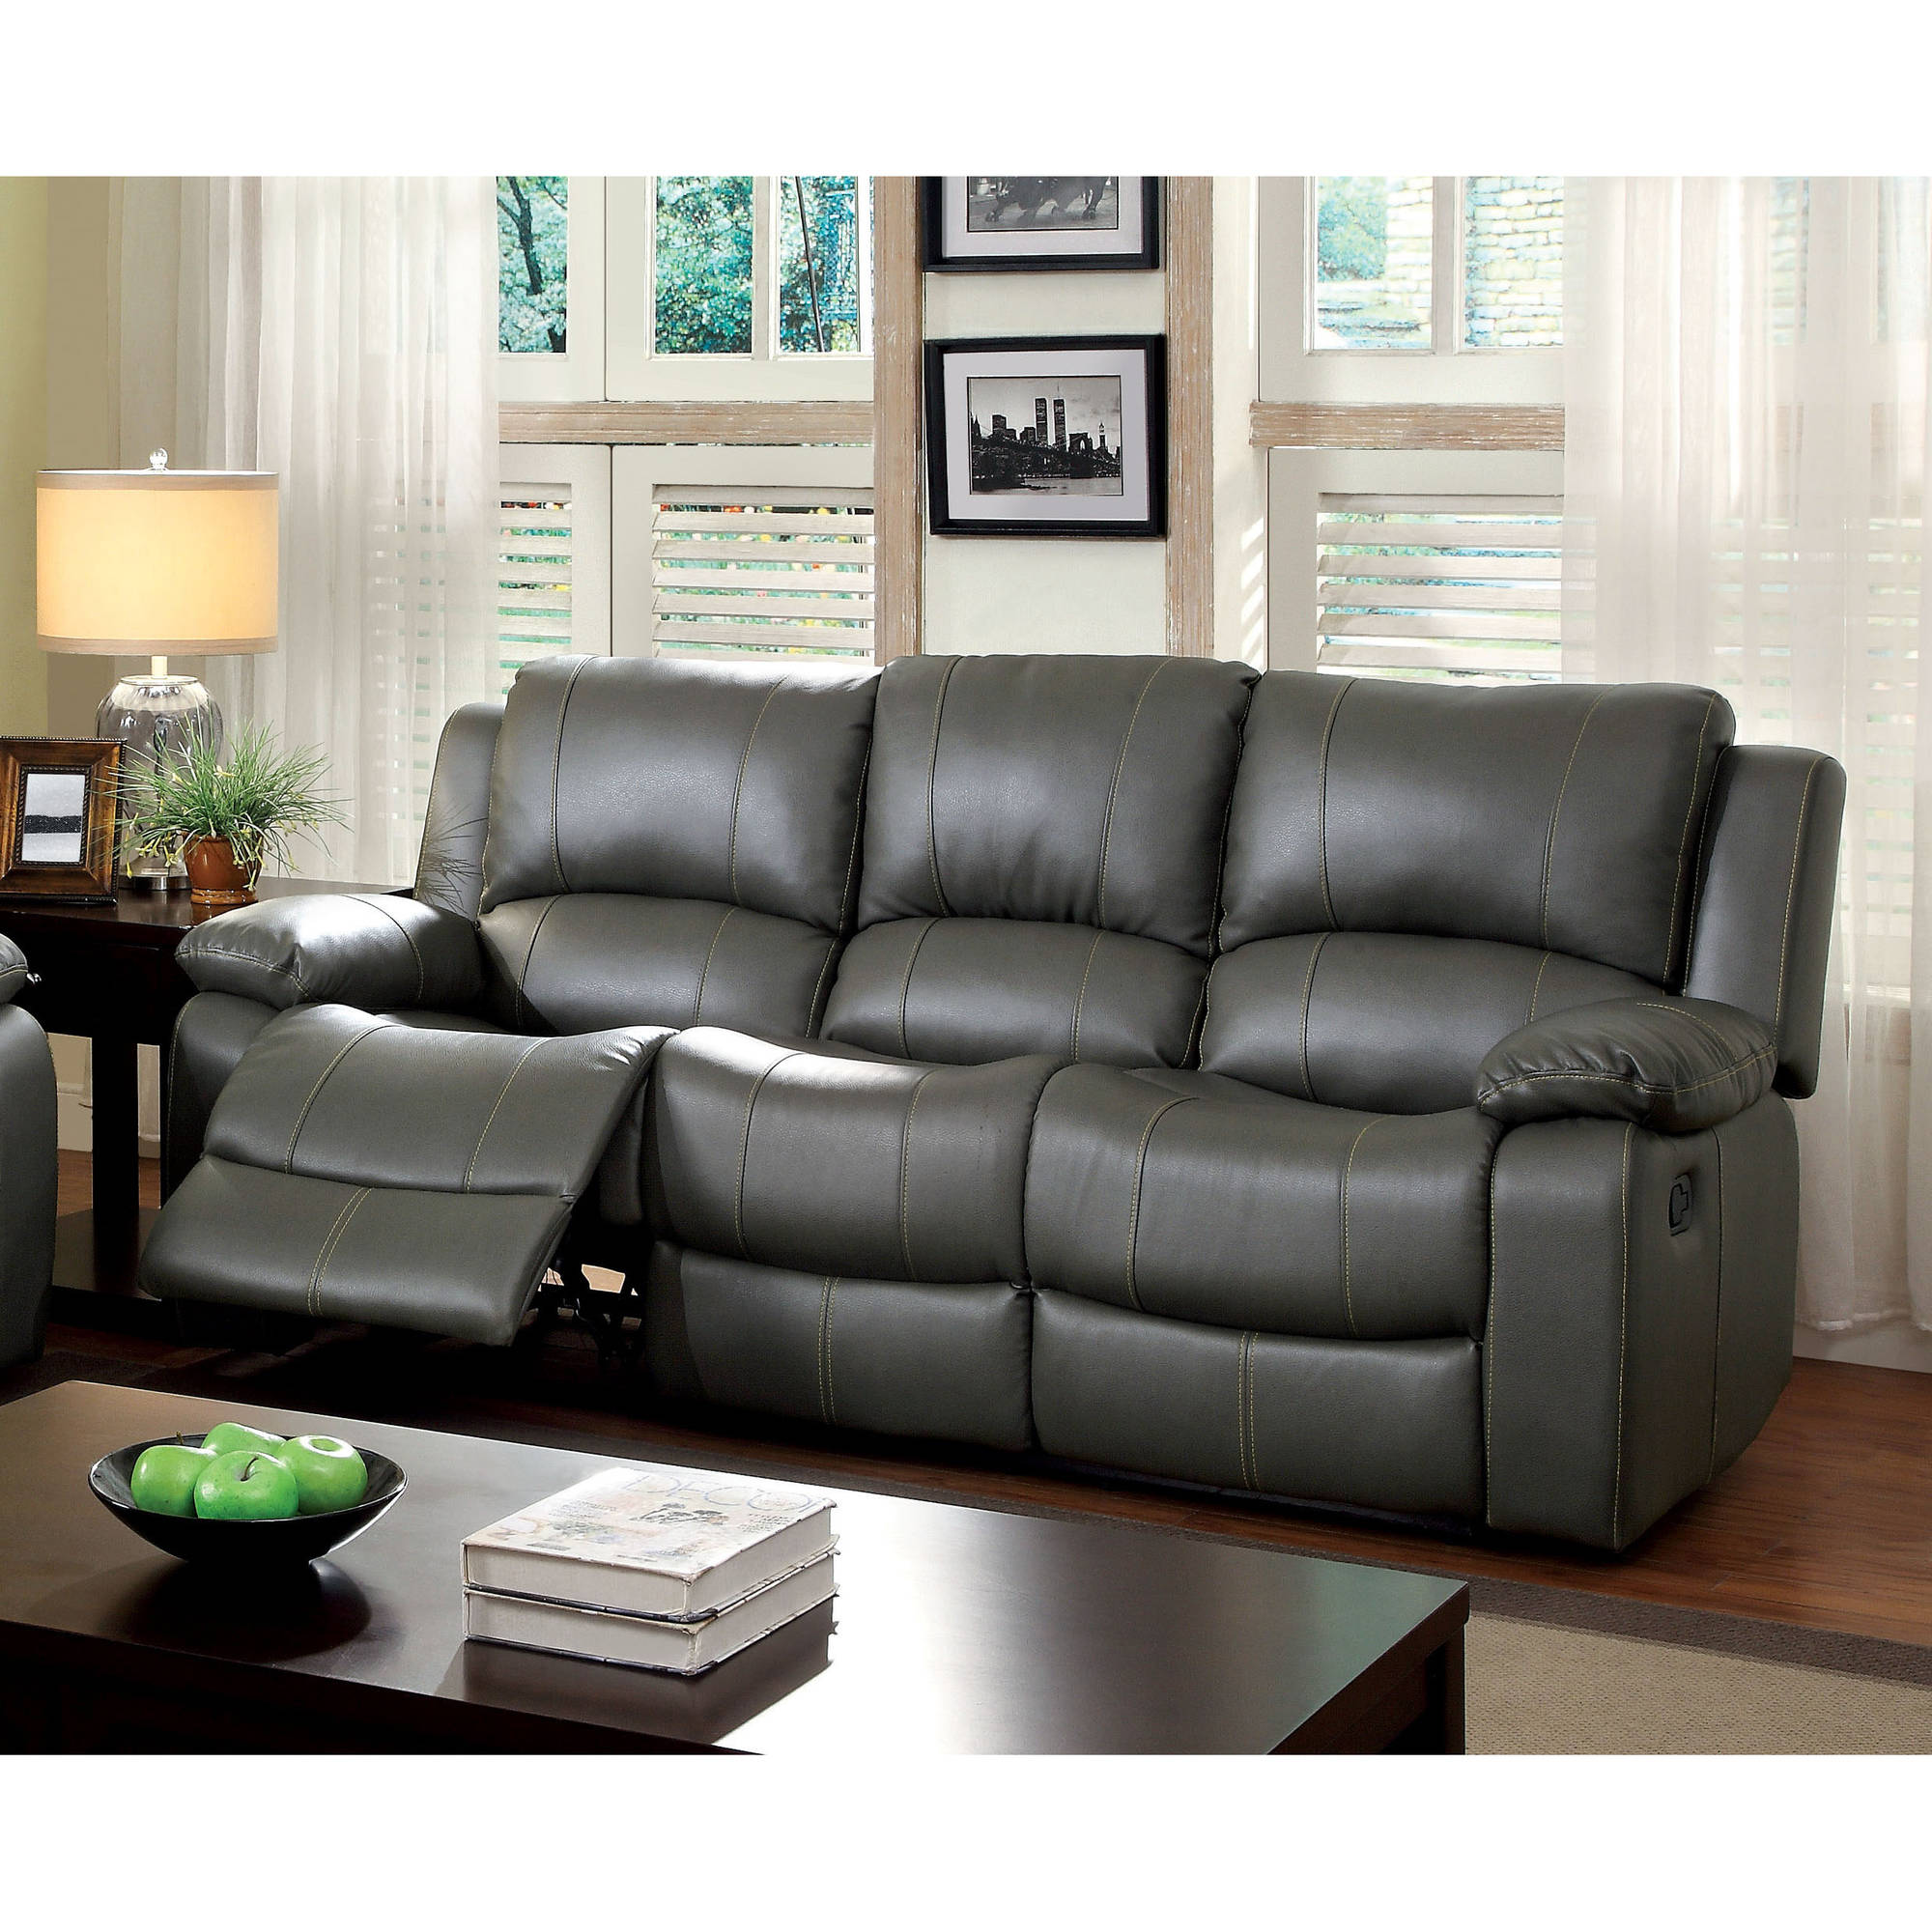 Furniture Of America Brentwood Leatherette Sofa Recliner, Gray